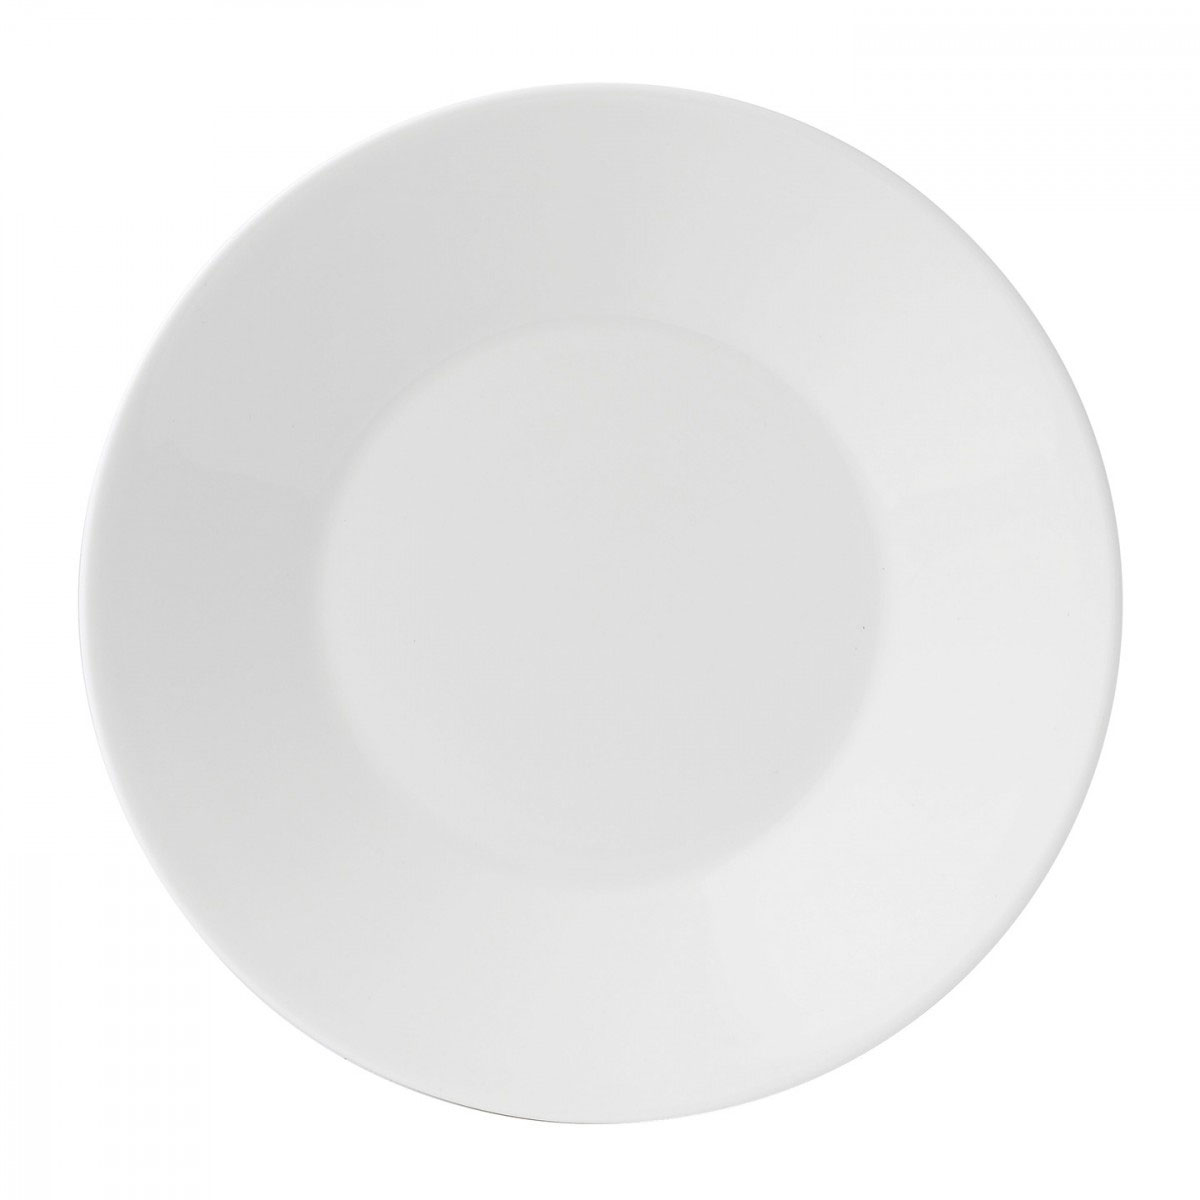 Jasper Conran At Wedgwood White Bone China, Bread and Butter Plate, Single